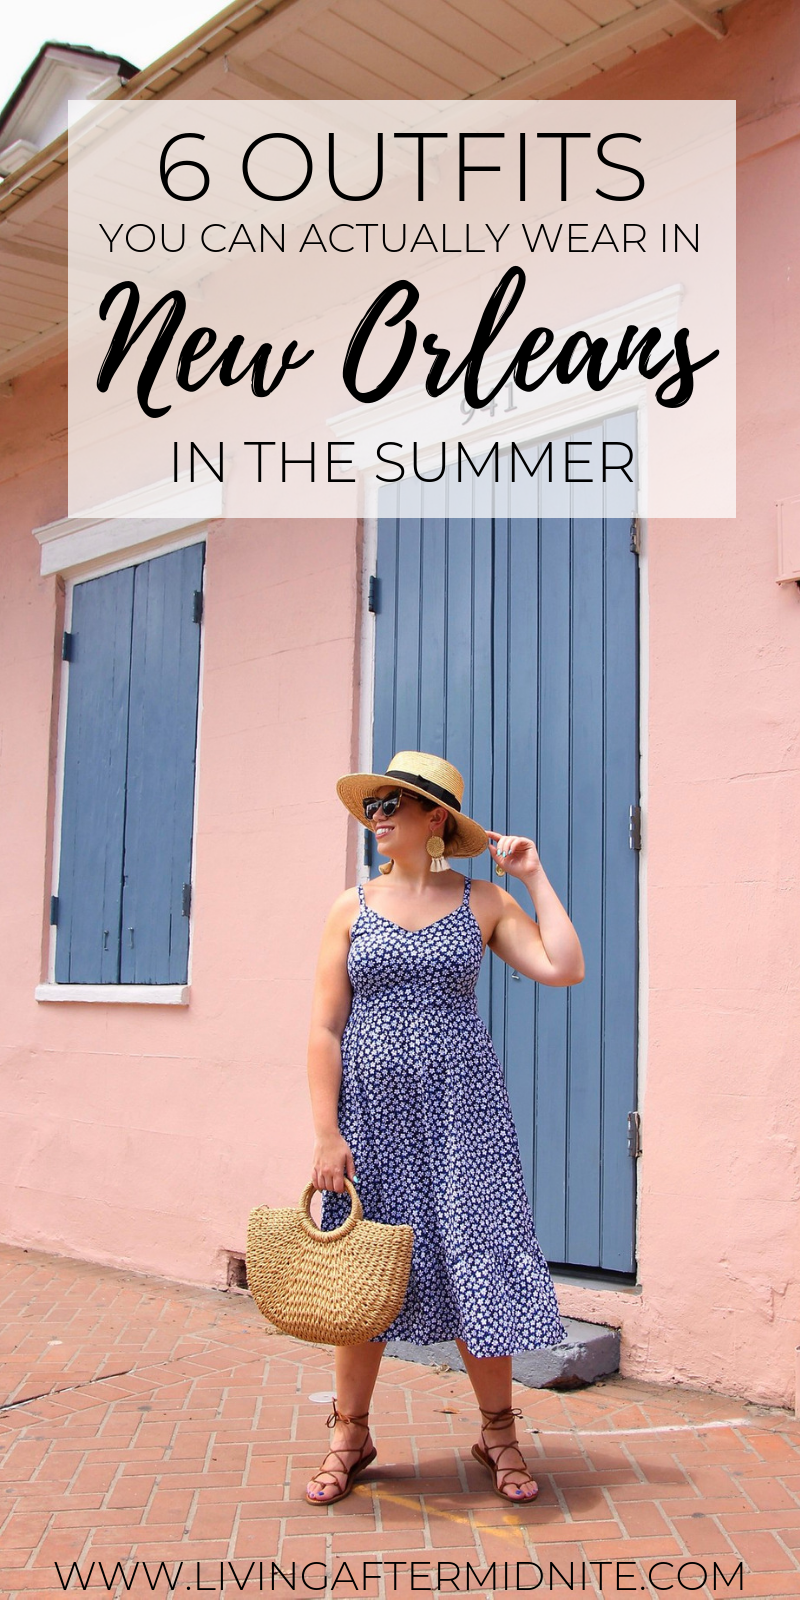 6 Outfits You Can Actually Wear in New Orleans in the Summer